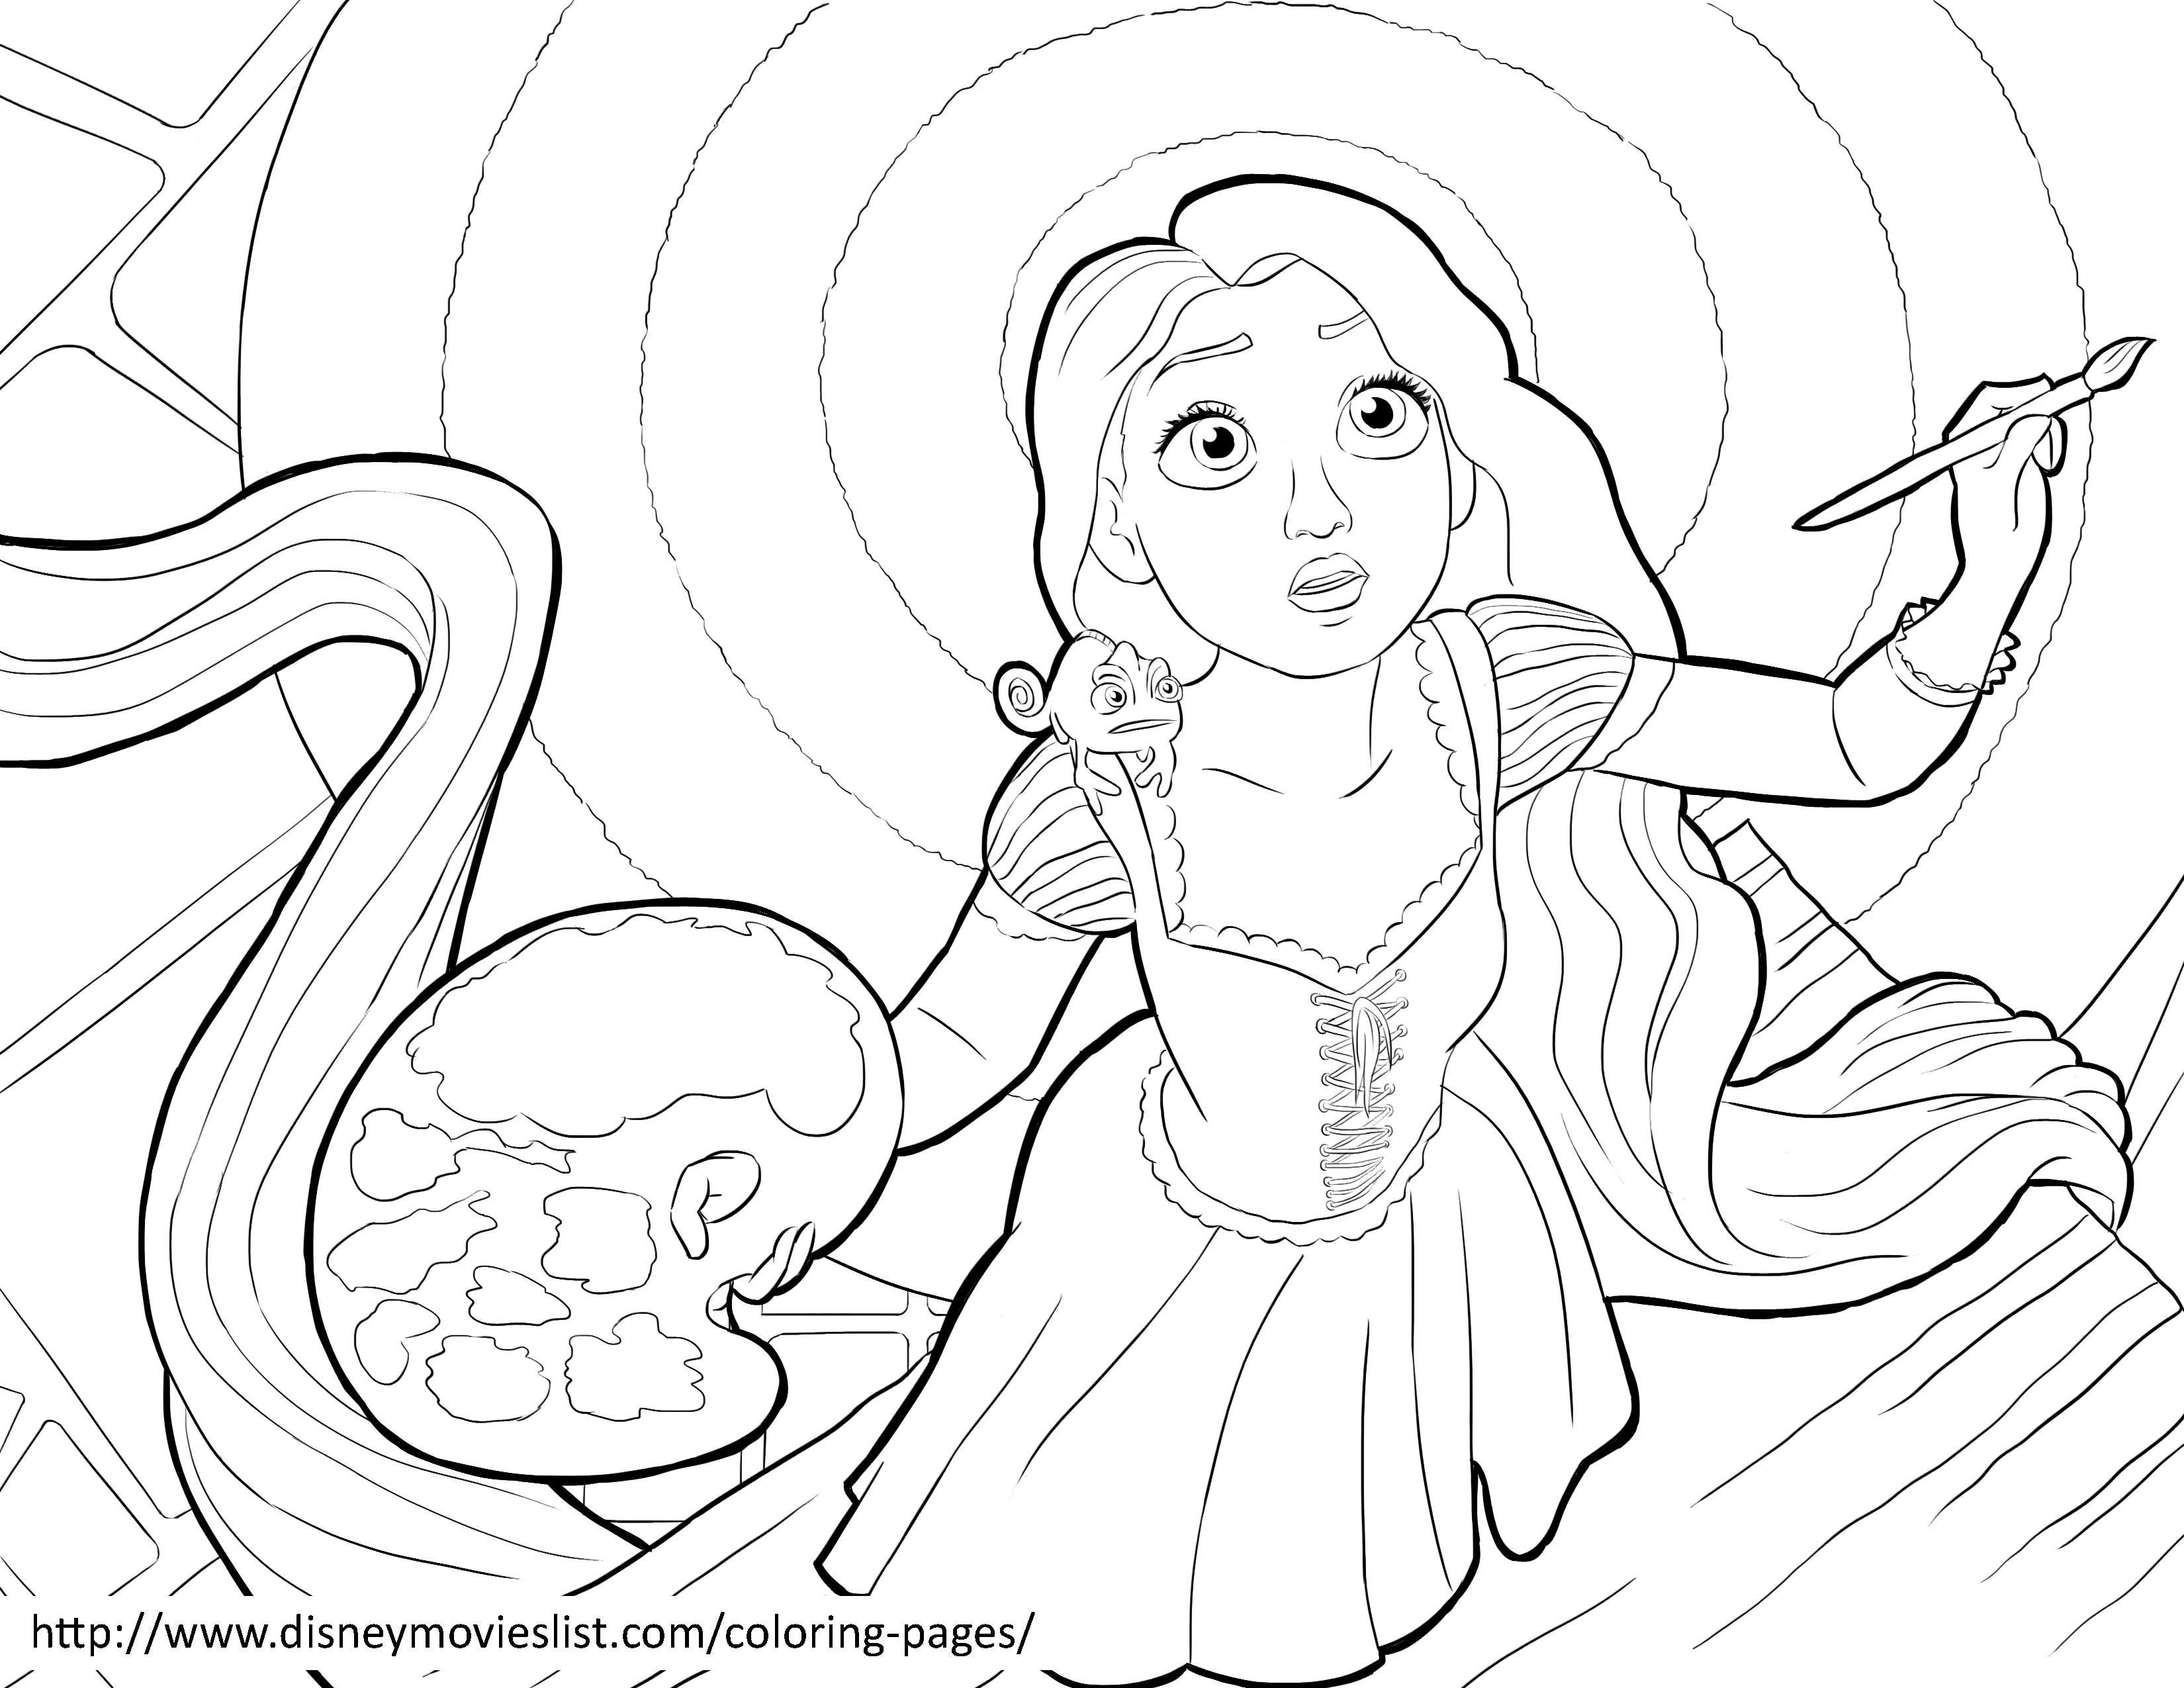 Disney S Tangled Coloring Pages Sheet Free Disney Printable Tangled Color Page